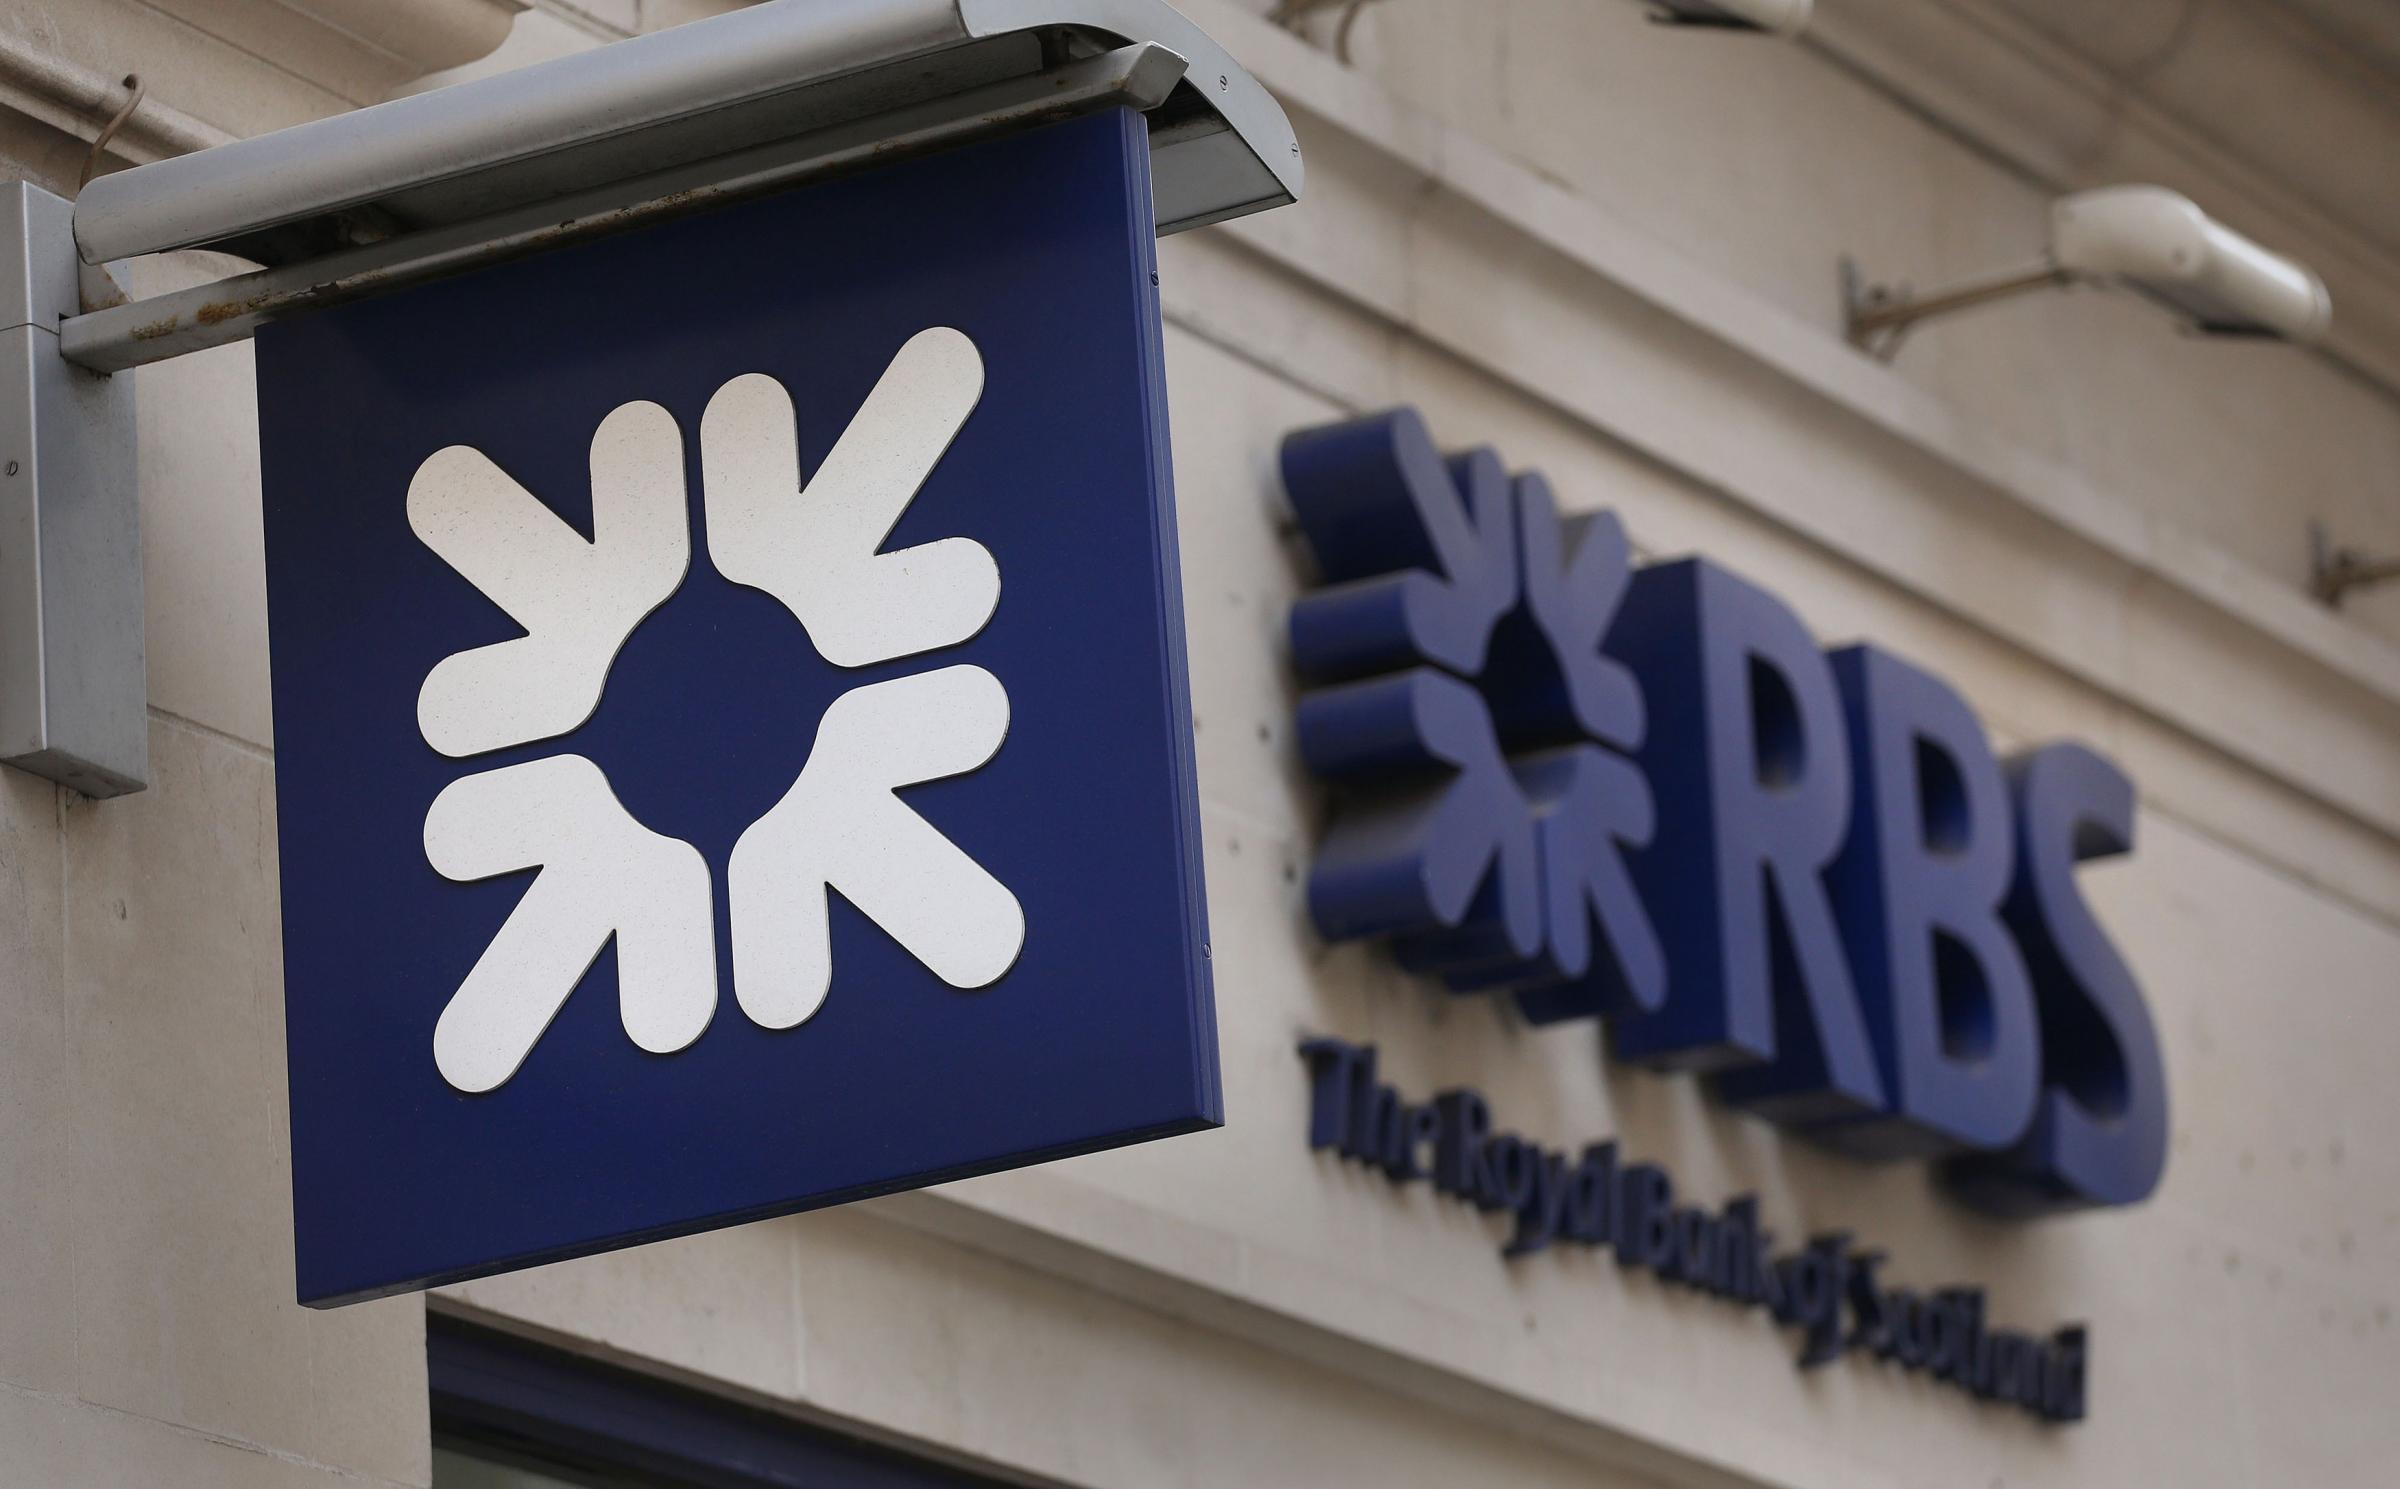 File photo dated 03/04/13 of a branch of the Royal Bank of Scotland, which is to close 259 branches resulting in 680 job losses. PRESS ASSOCIATION Photo. Issue date: Friday December 1, 2017. See PA story CITY RBS. Photo credit should read: Philip Toscano/